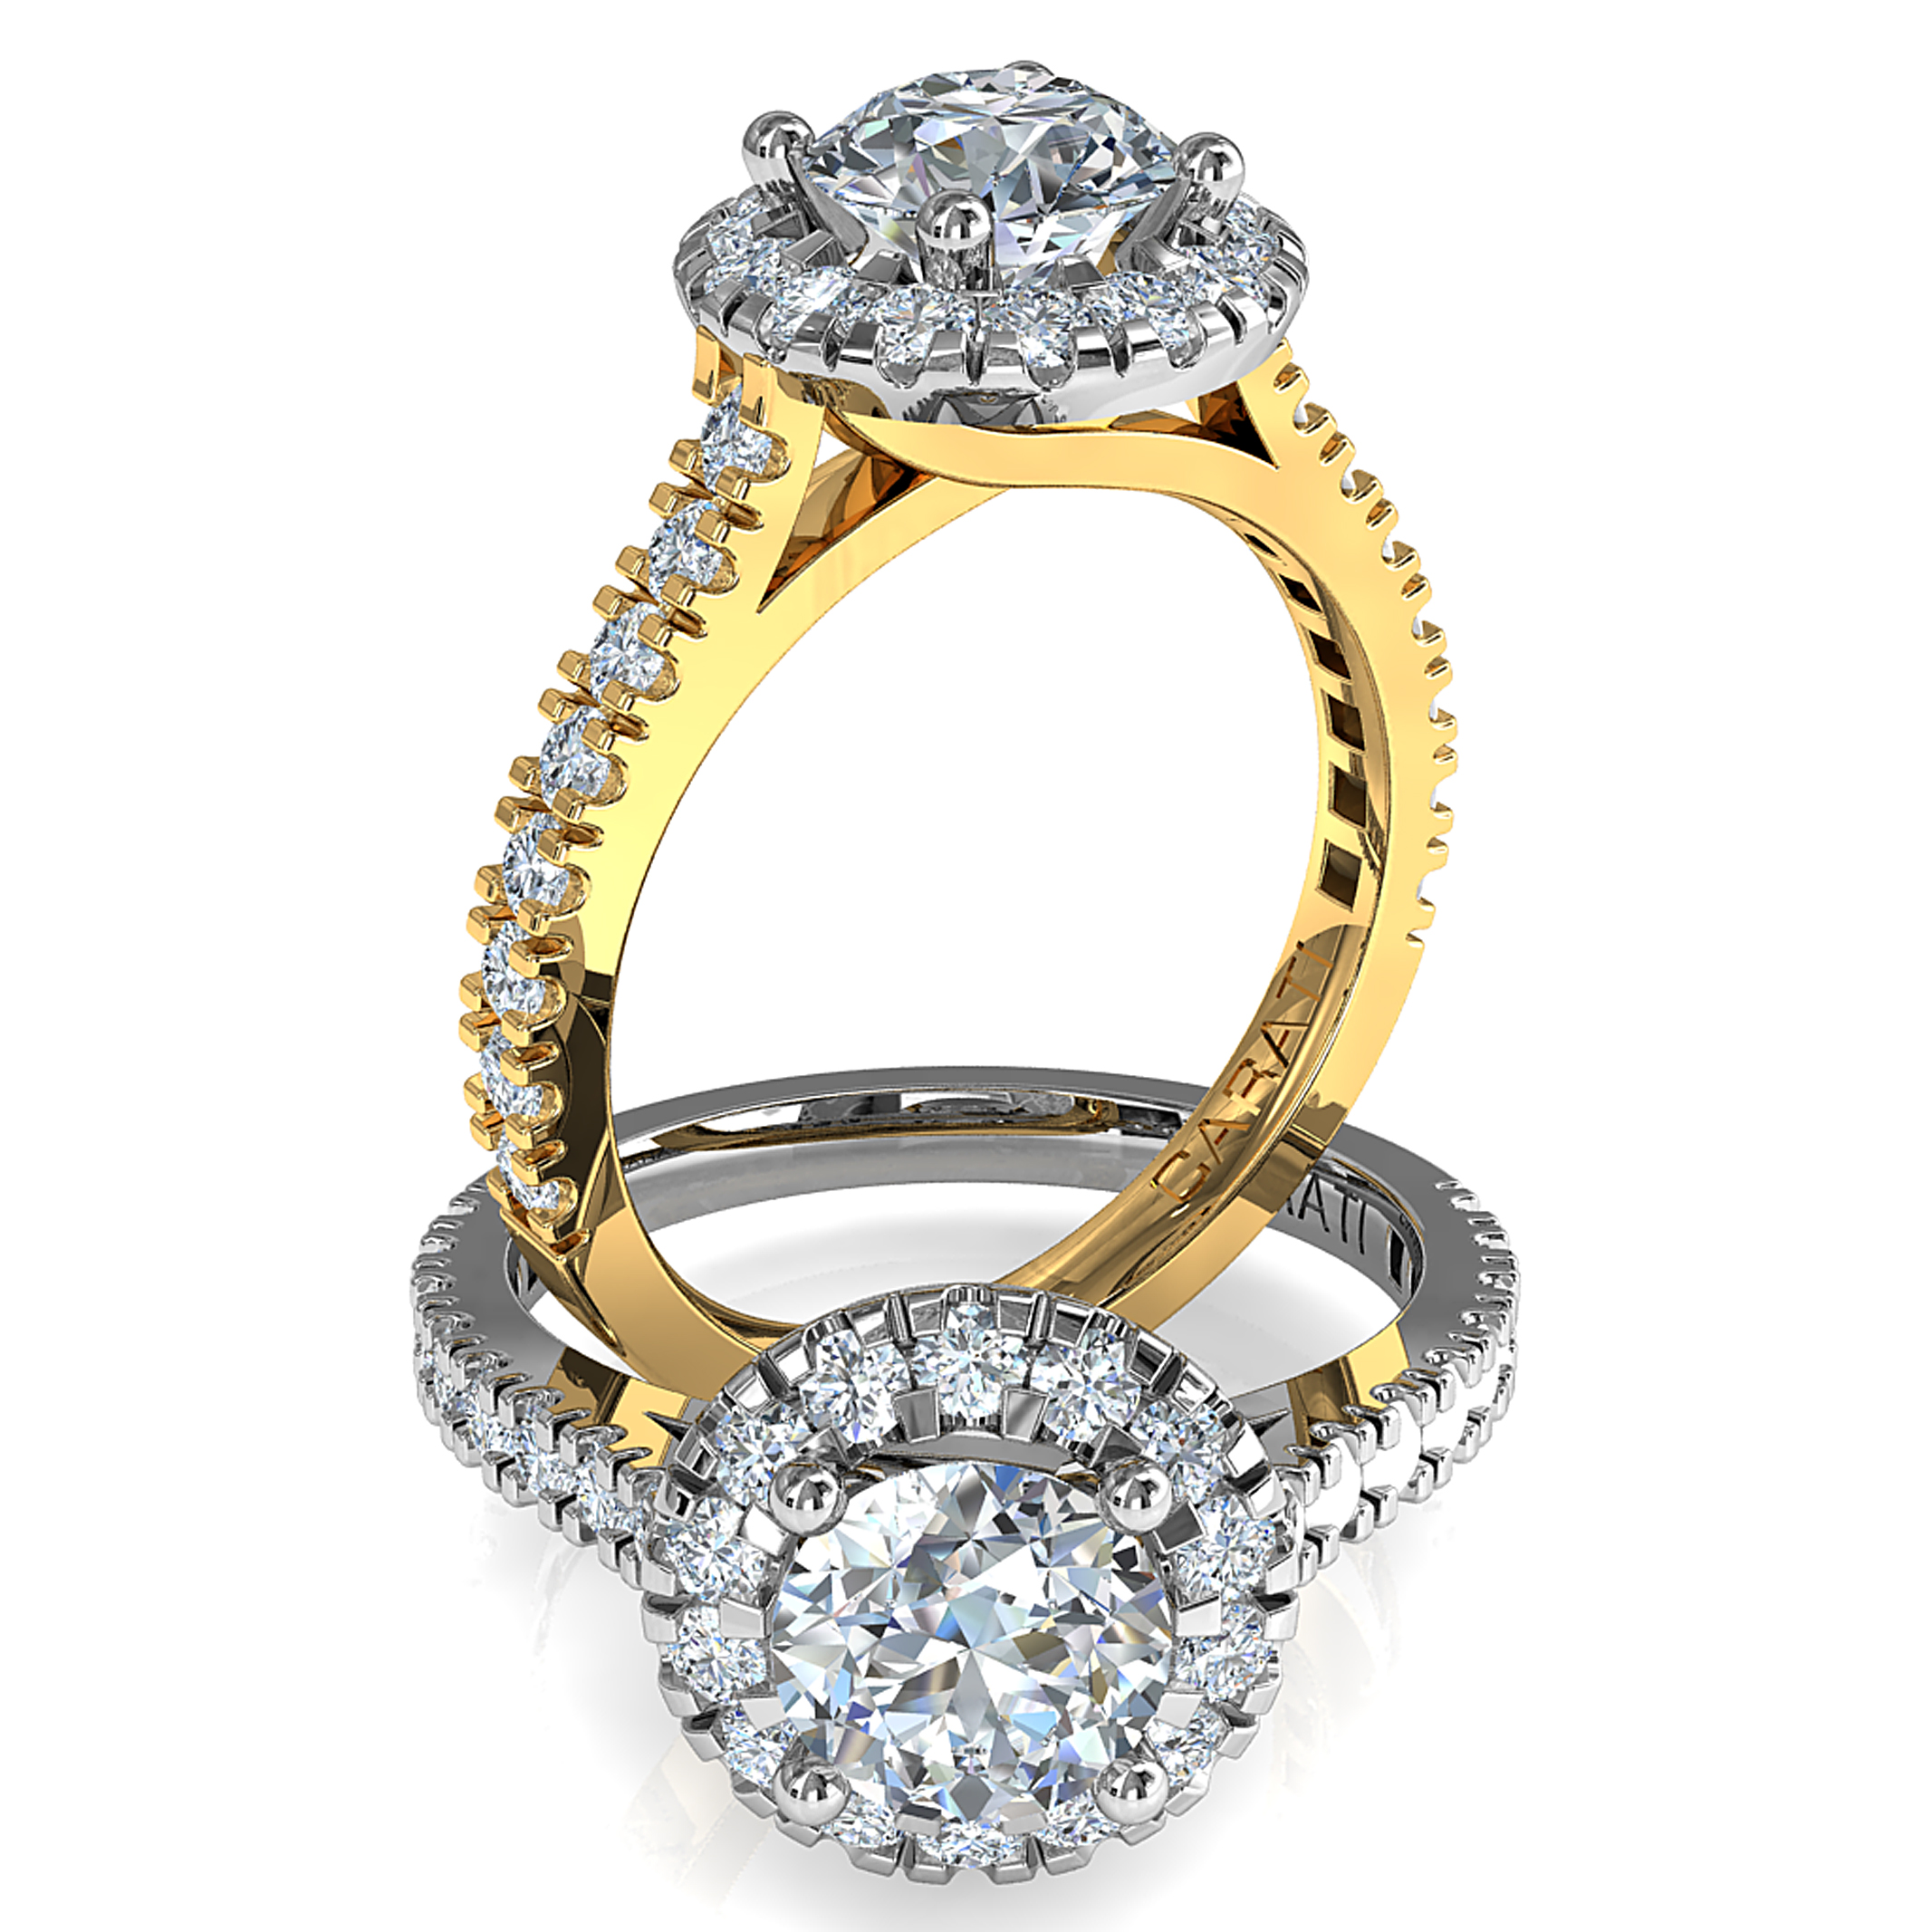 Round Brilliant Cut Halo Diamond Engagement Ring, 4 Button Claws Set in a Double Cut Claw Halo on a Double Cut Claw Band with a Crossover Undersetting.